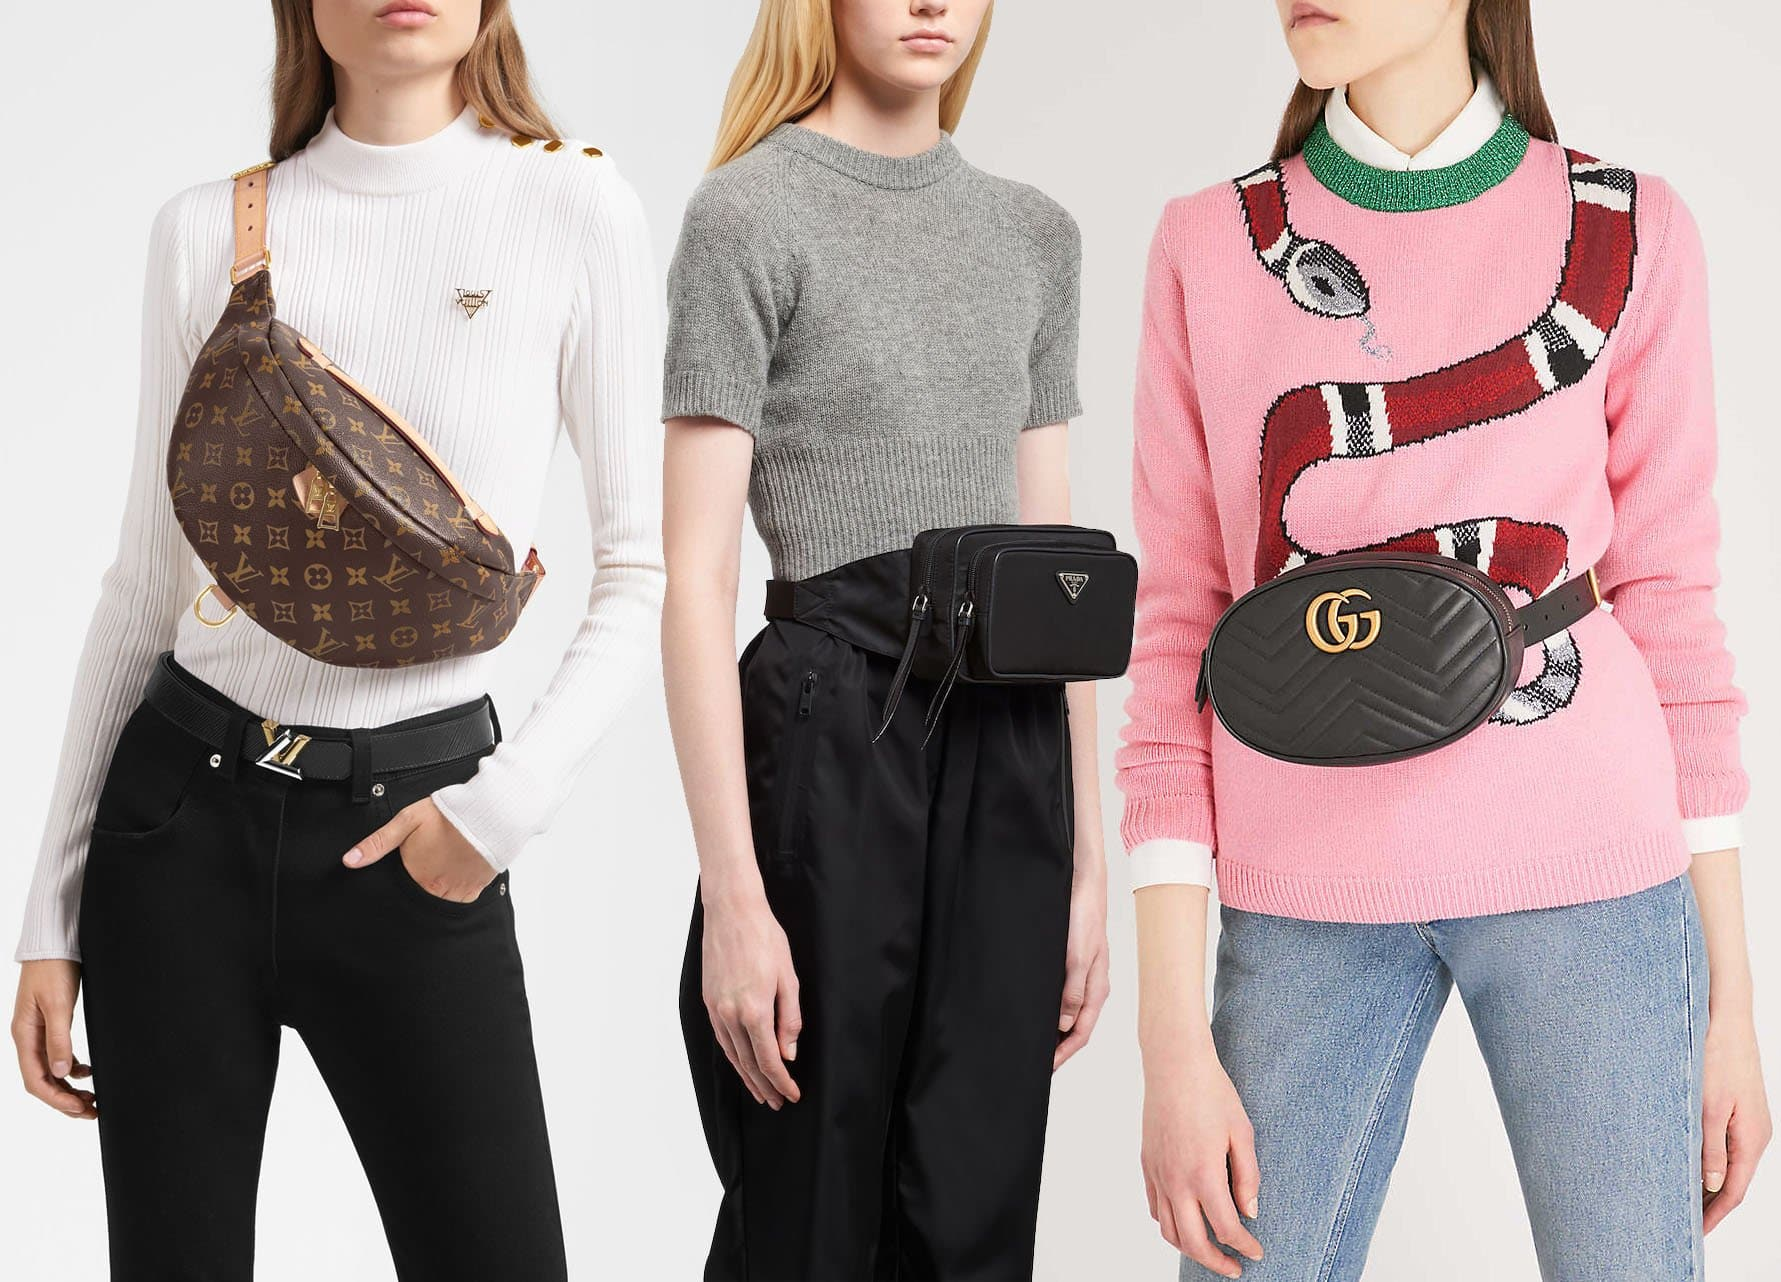 High-fashion brands like Louis Vuitton, Prada, and Gucci introduced new belt bag silhouettes in 2018